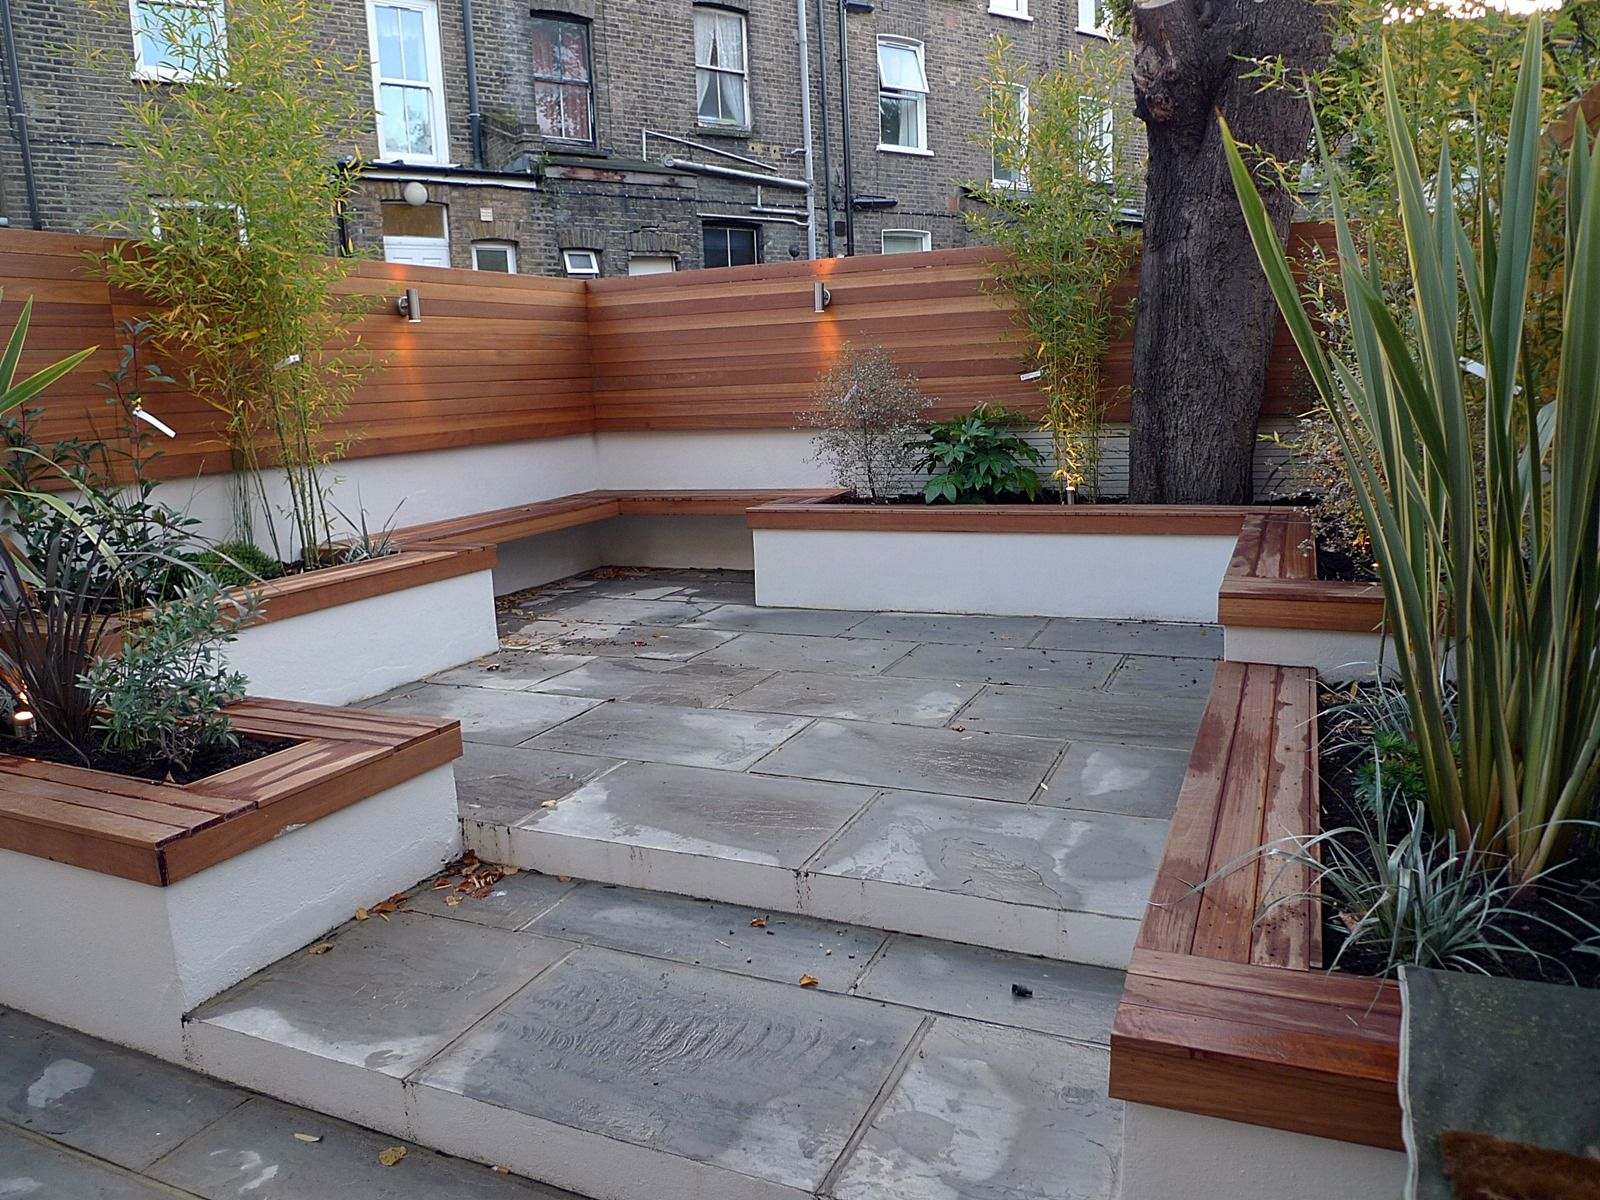 Modern london courtyard low maintenance urban outdoor for Paved courtyard garden ideas